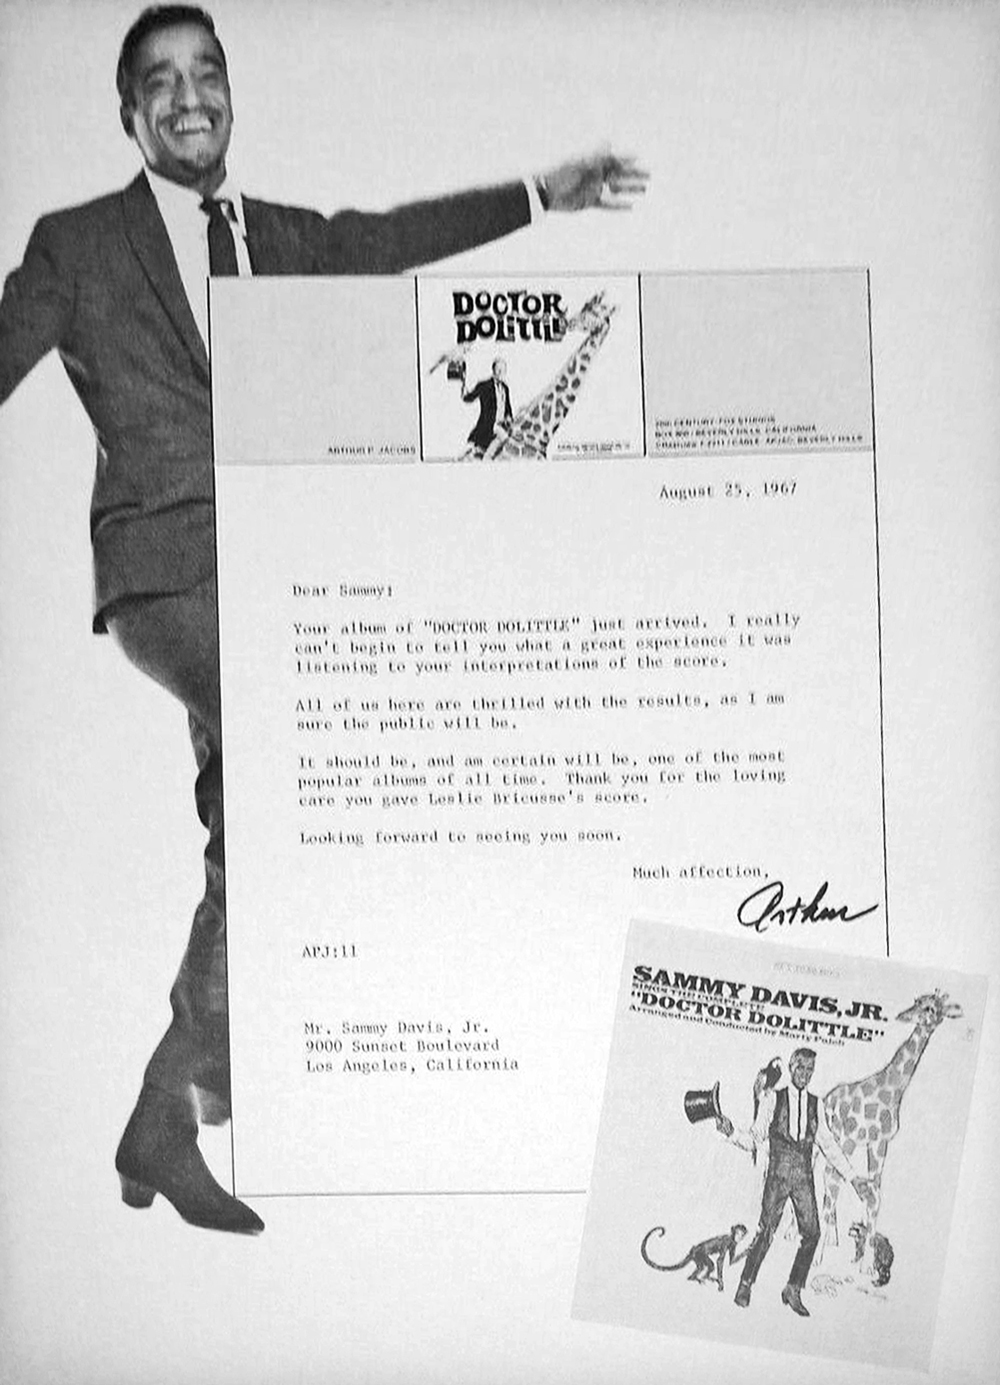 Letter from Producer Arthur Jacobs to Sammy Davis, Jr.